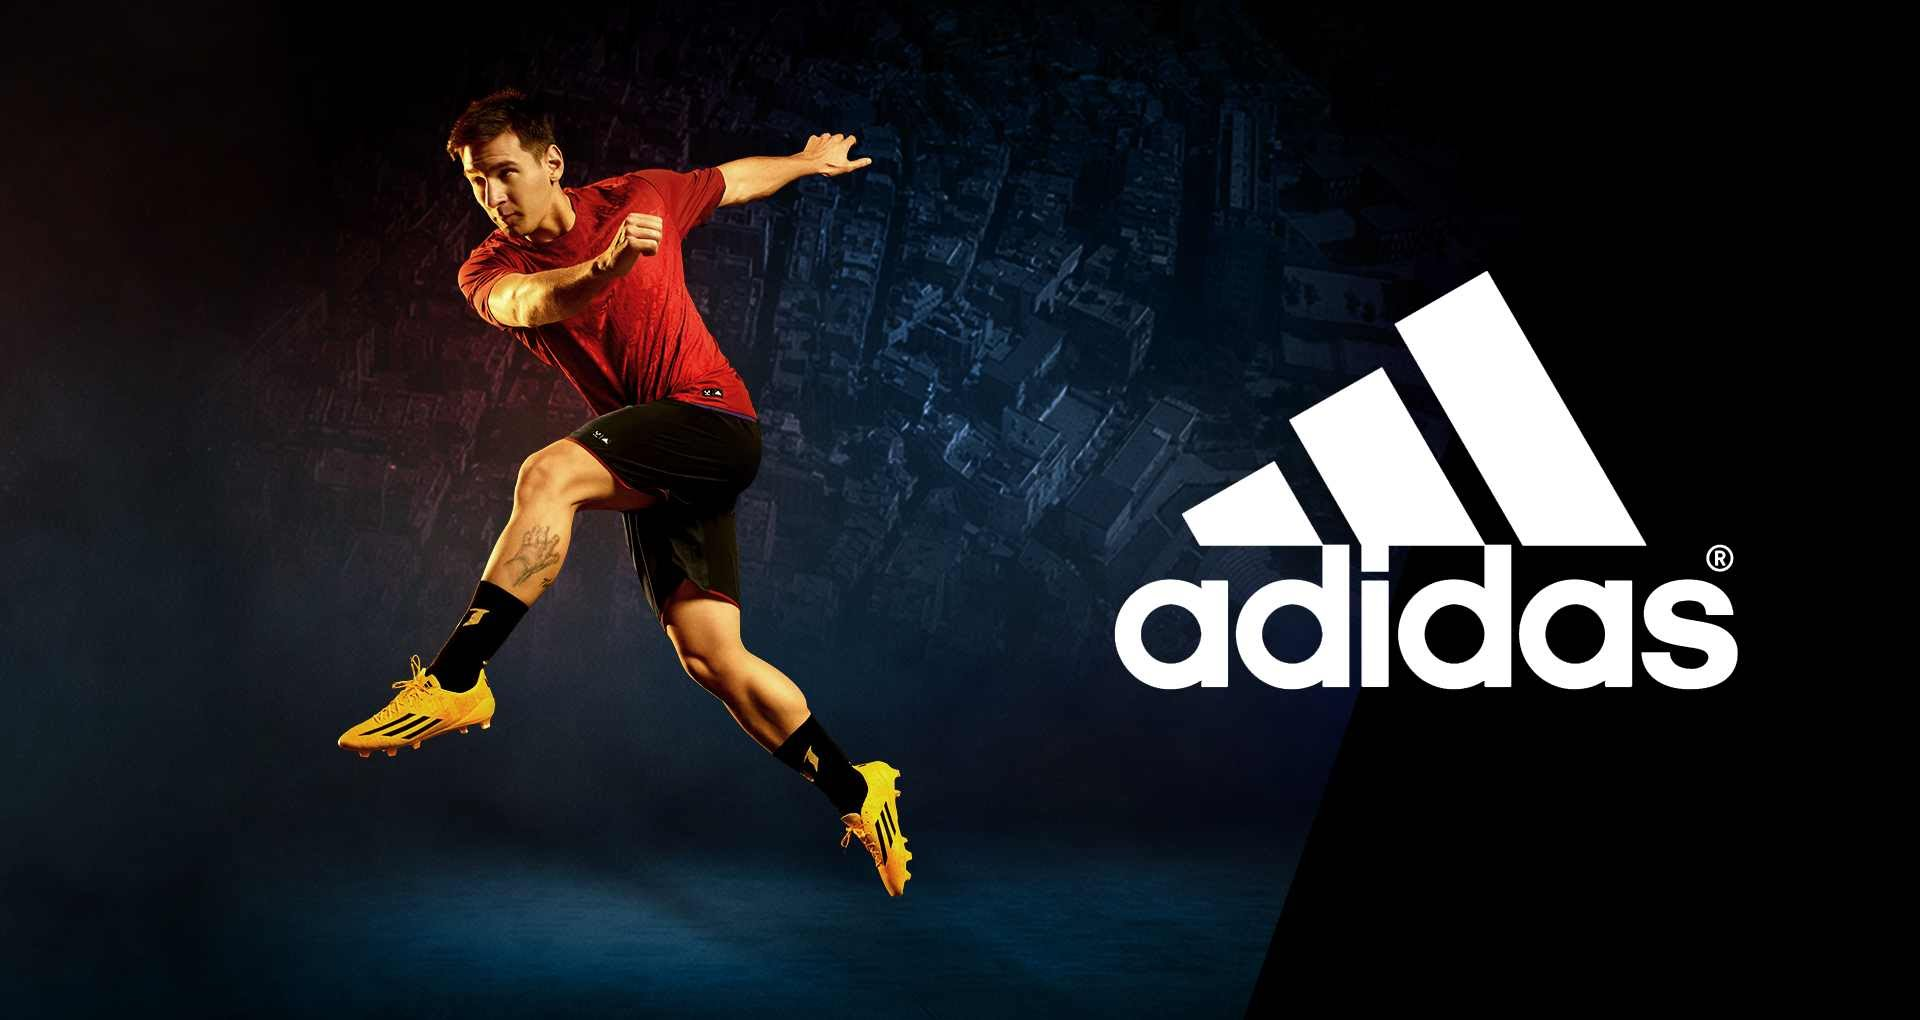 adidas soccer commercial 2015